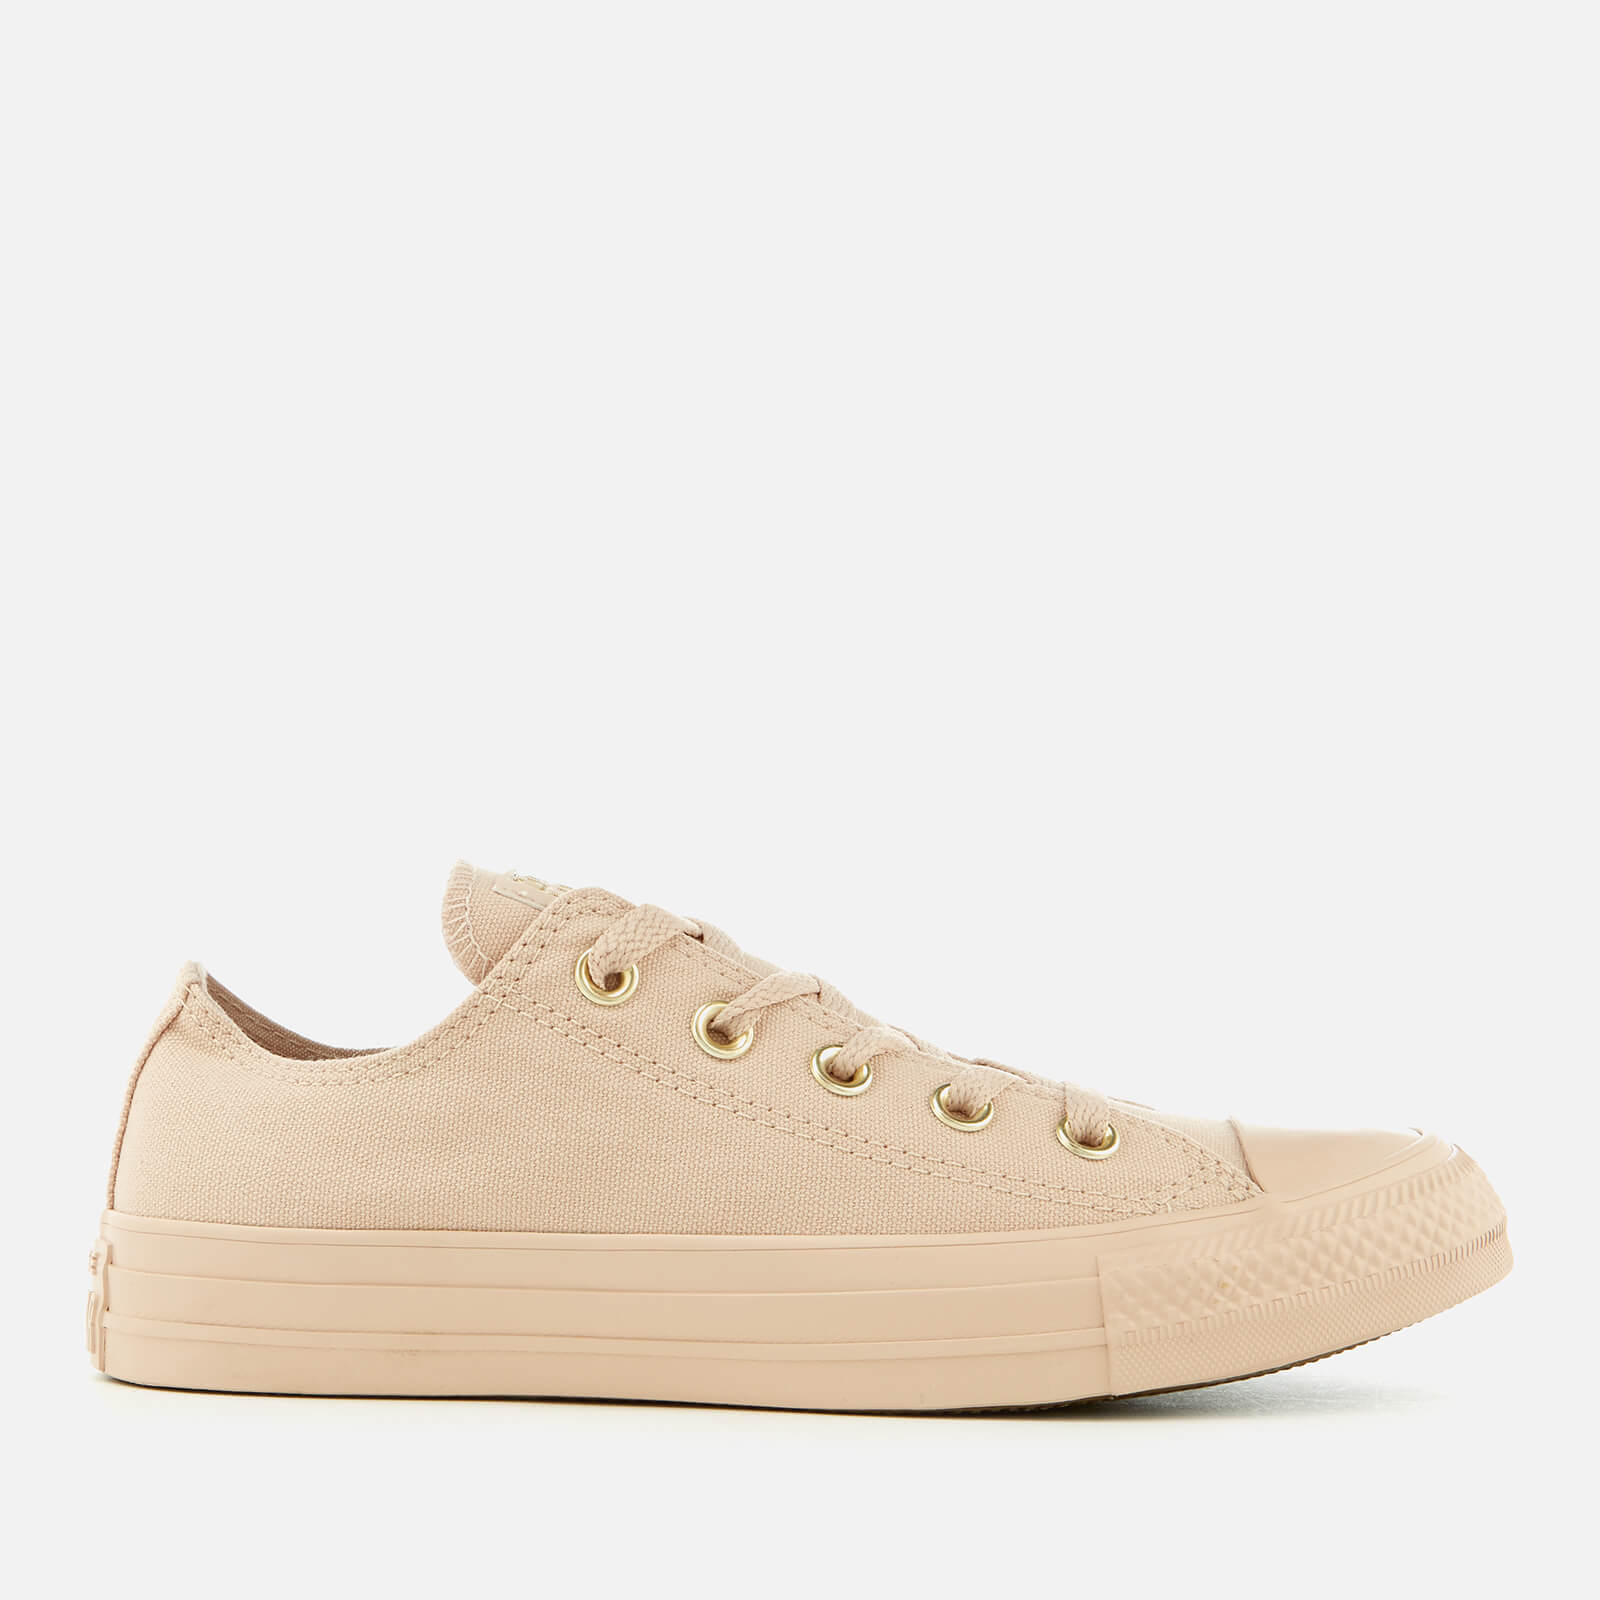 b33848ad158b Converse Women s Chuck Taylor All Star Ox Trainers - Particle Beige Womens  Footwear